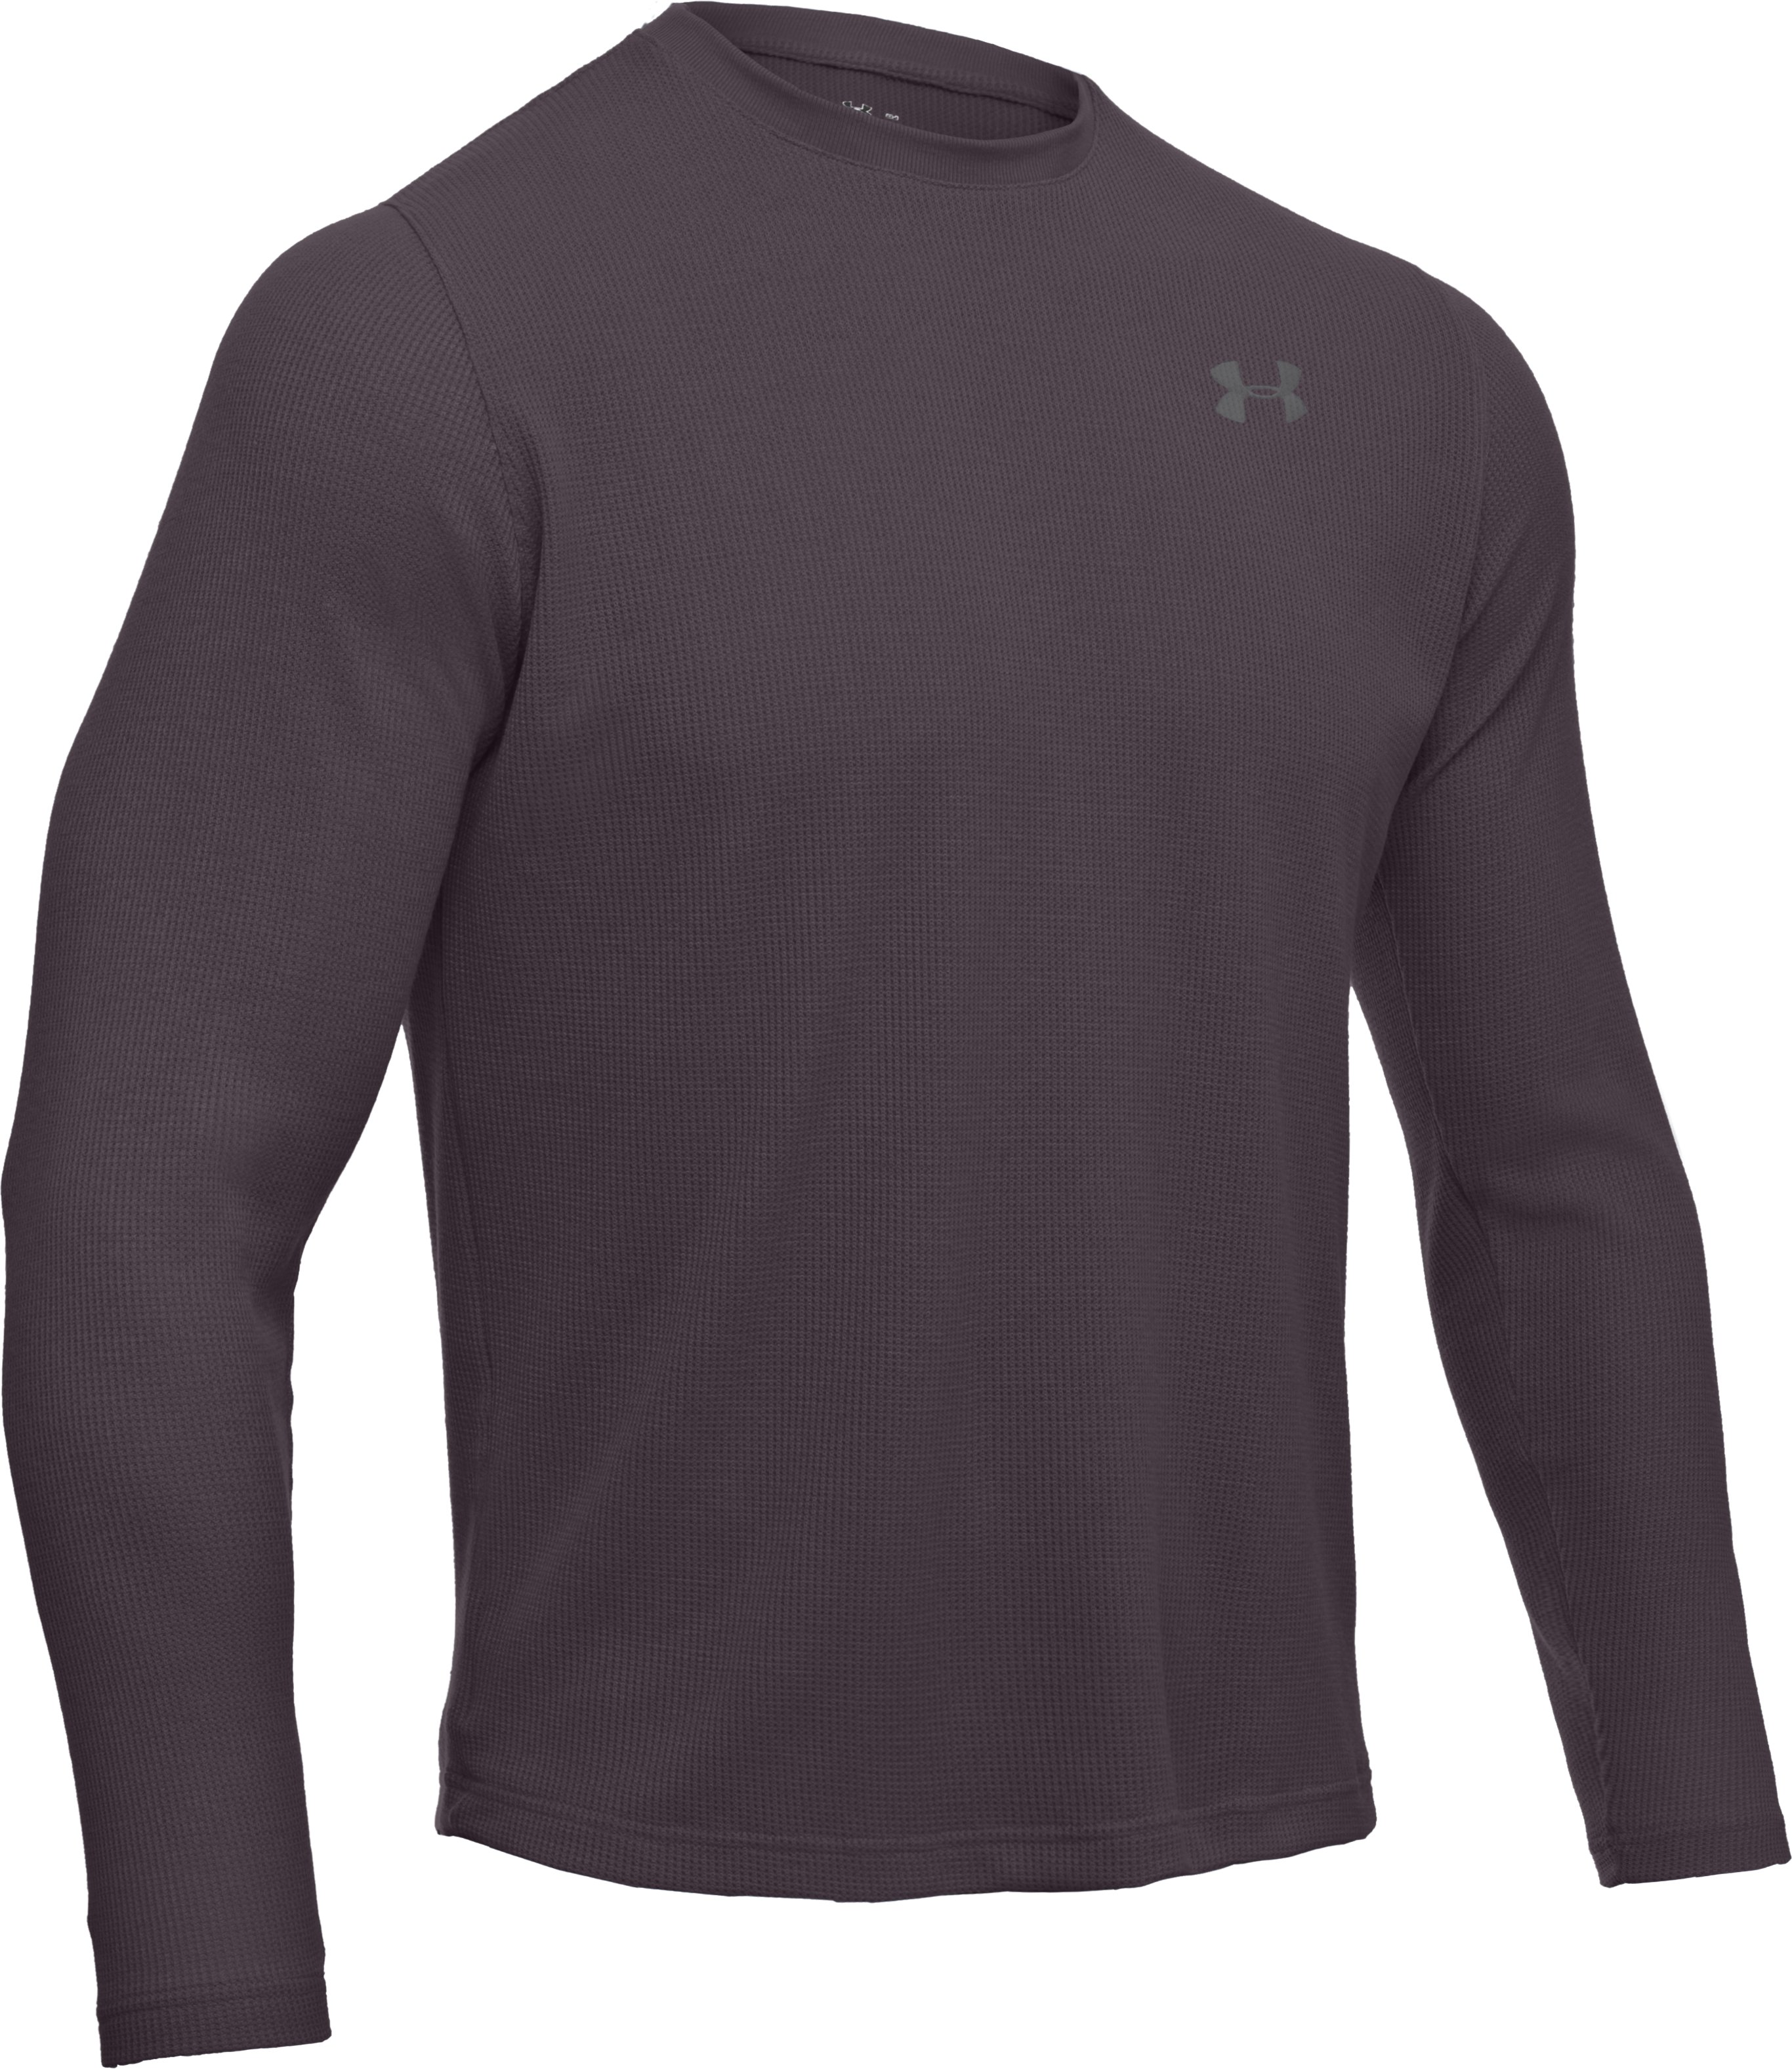 Men's Long Sleeve Waffle Crew, Charcoal, undefined